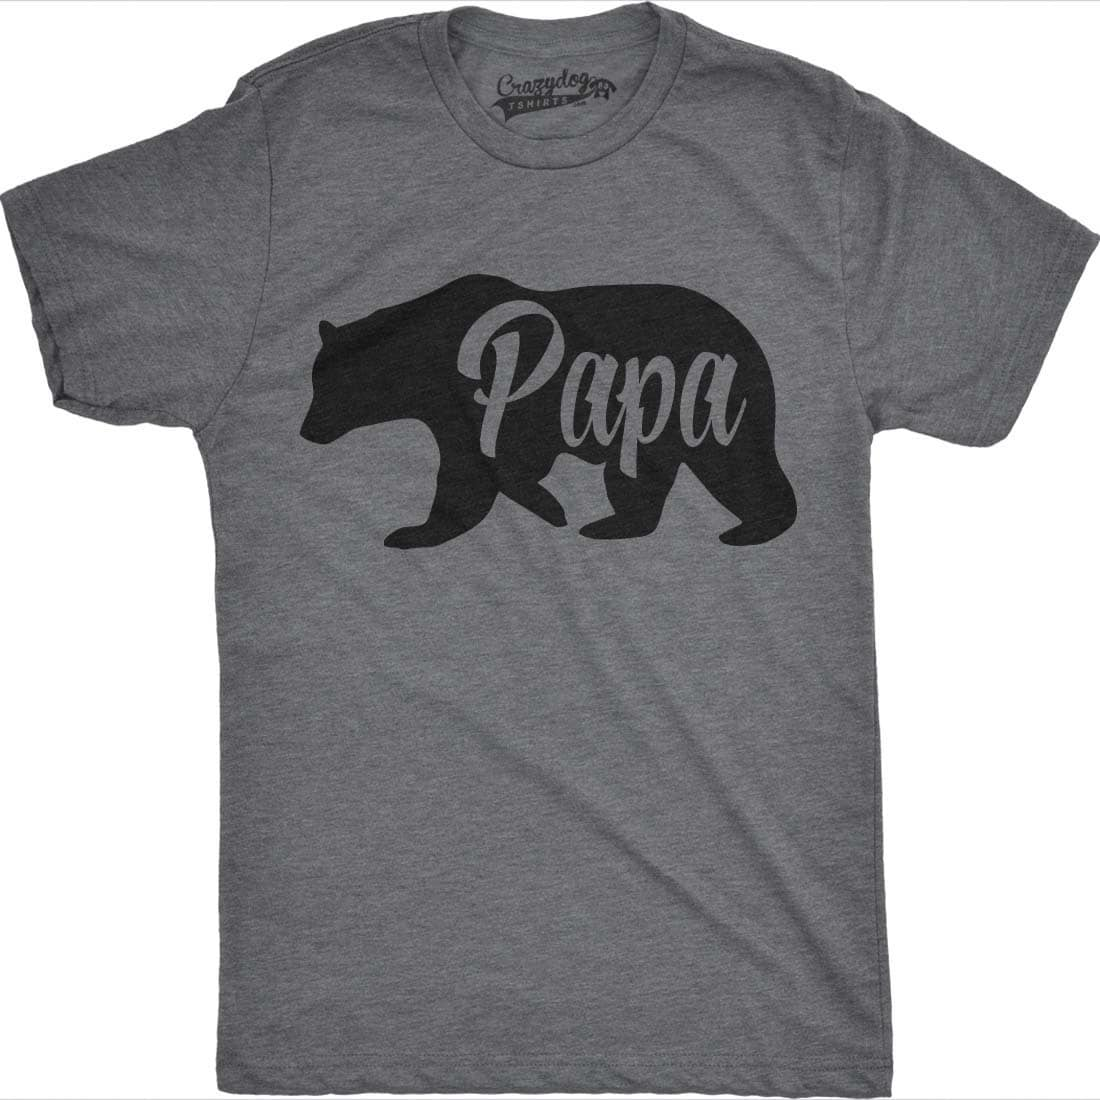 6f2ec45b8 Mens Bear Papa Funny Shirts For Dads Gift Idea Novelty Tees Family T Shirt